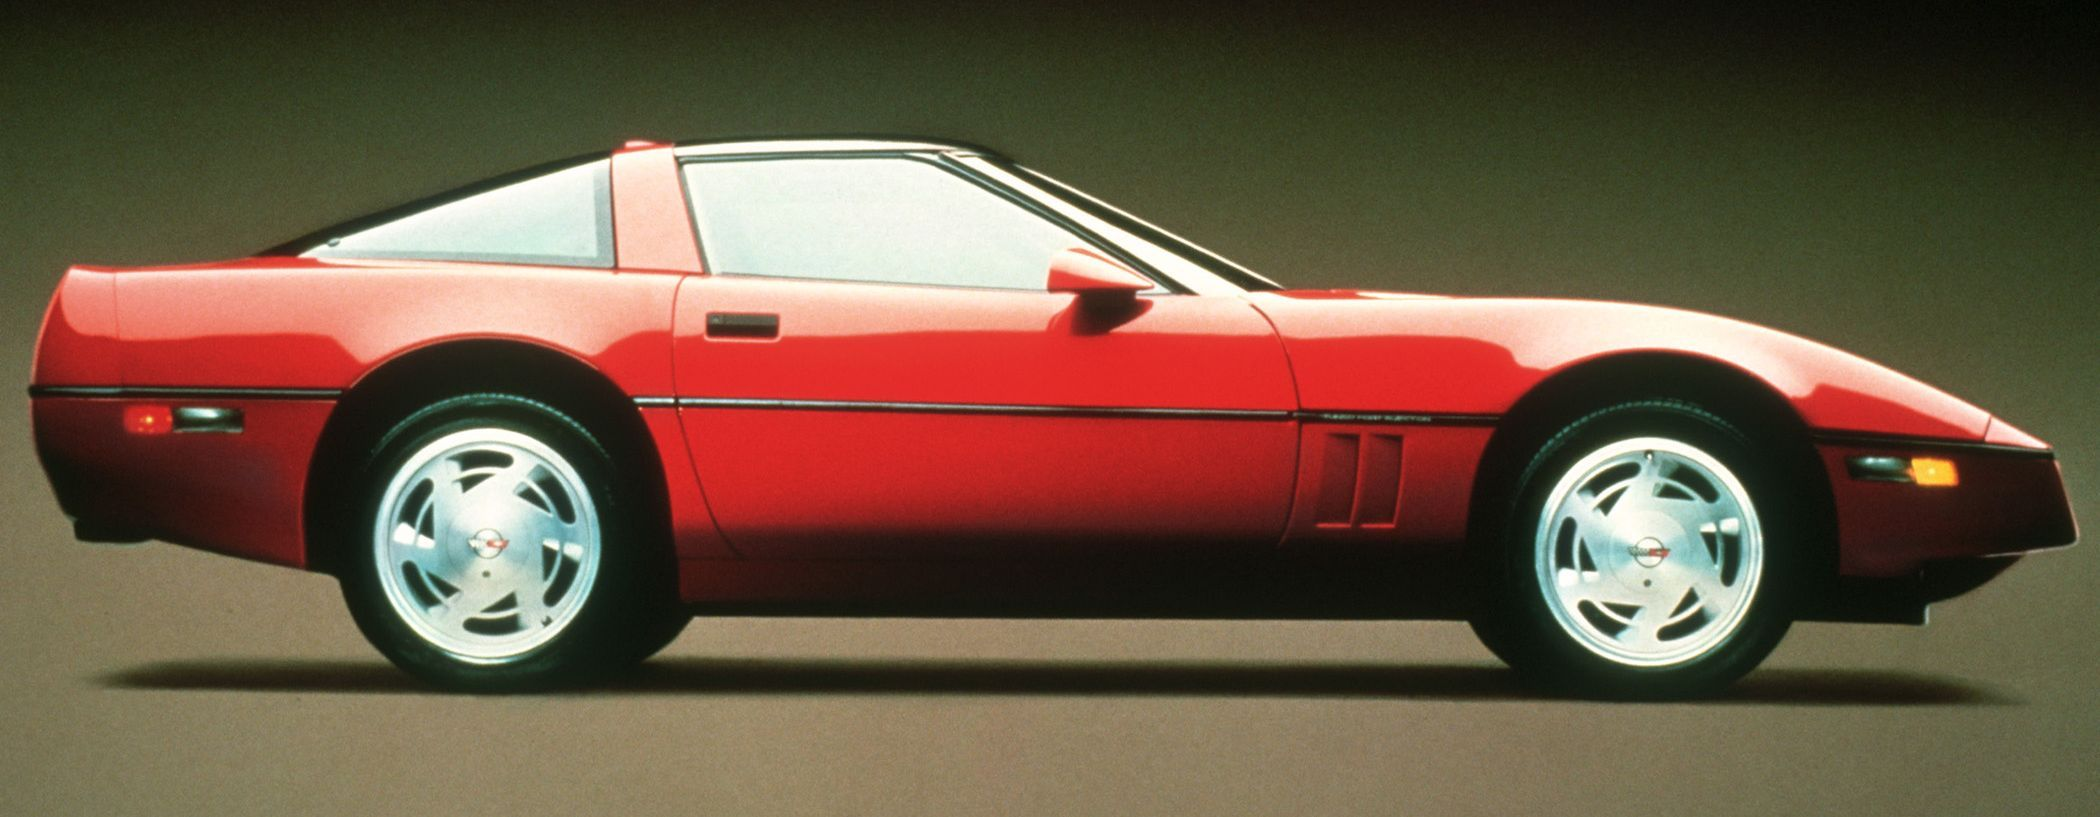 This is a 1990 first generation C4 ZR-1 had subtle differences from a regular Corvette in the body, wider rear quarters were one. Inconspicuous in appearance but not in performance. The promo car was  1991, distinguished by the color matched body insert, and side vents.